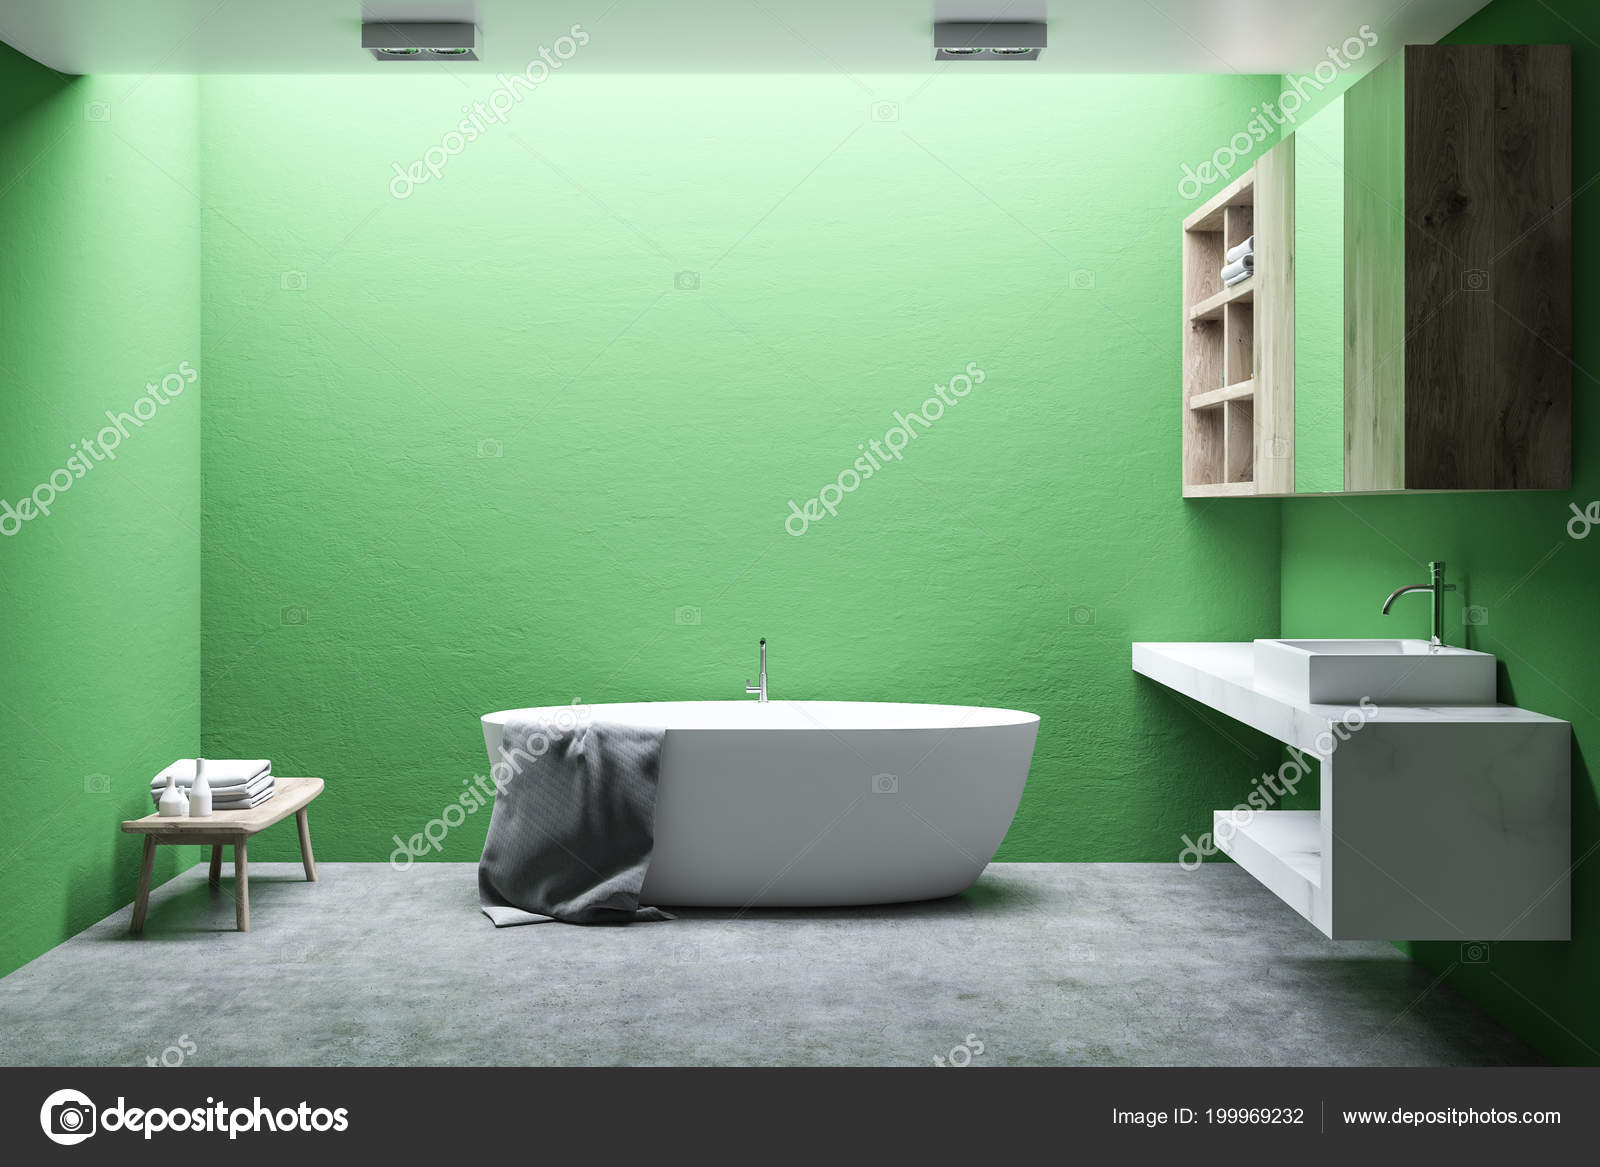 Minimalist Bathroom Interior Light Green Walls Concrete Floor White ...